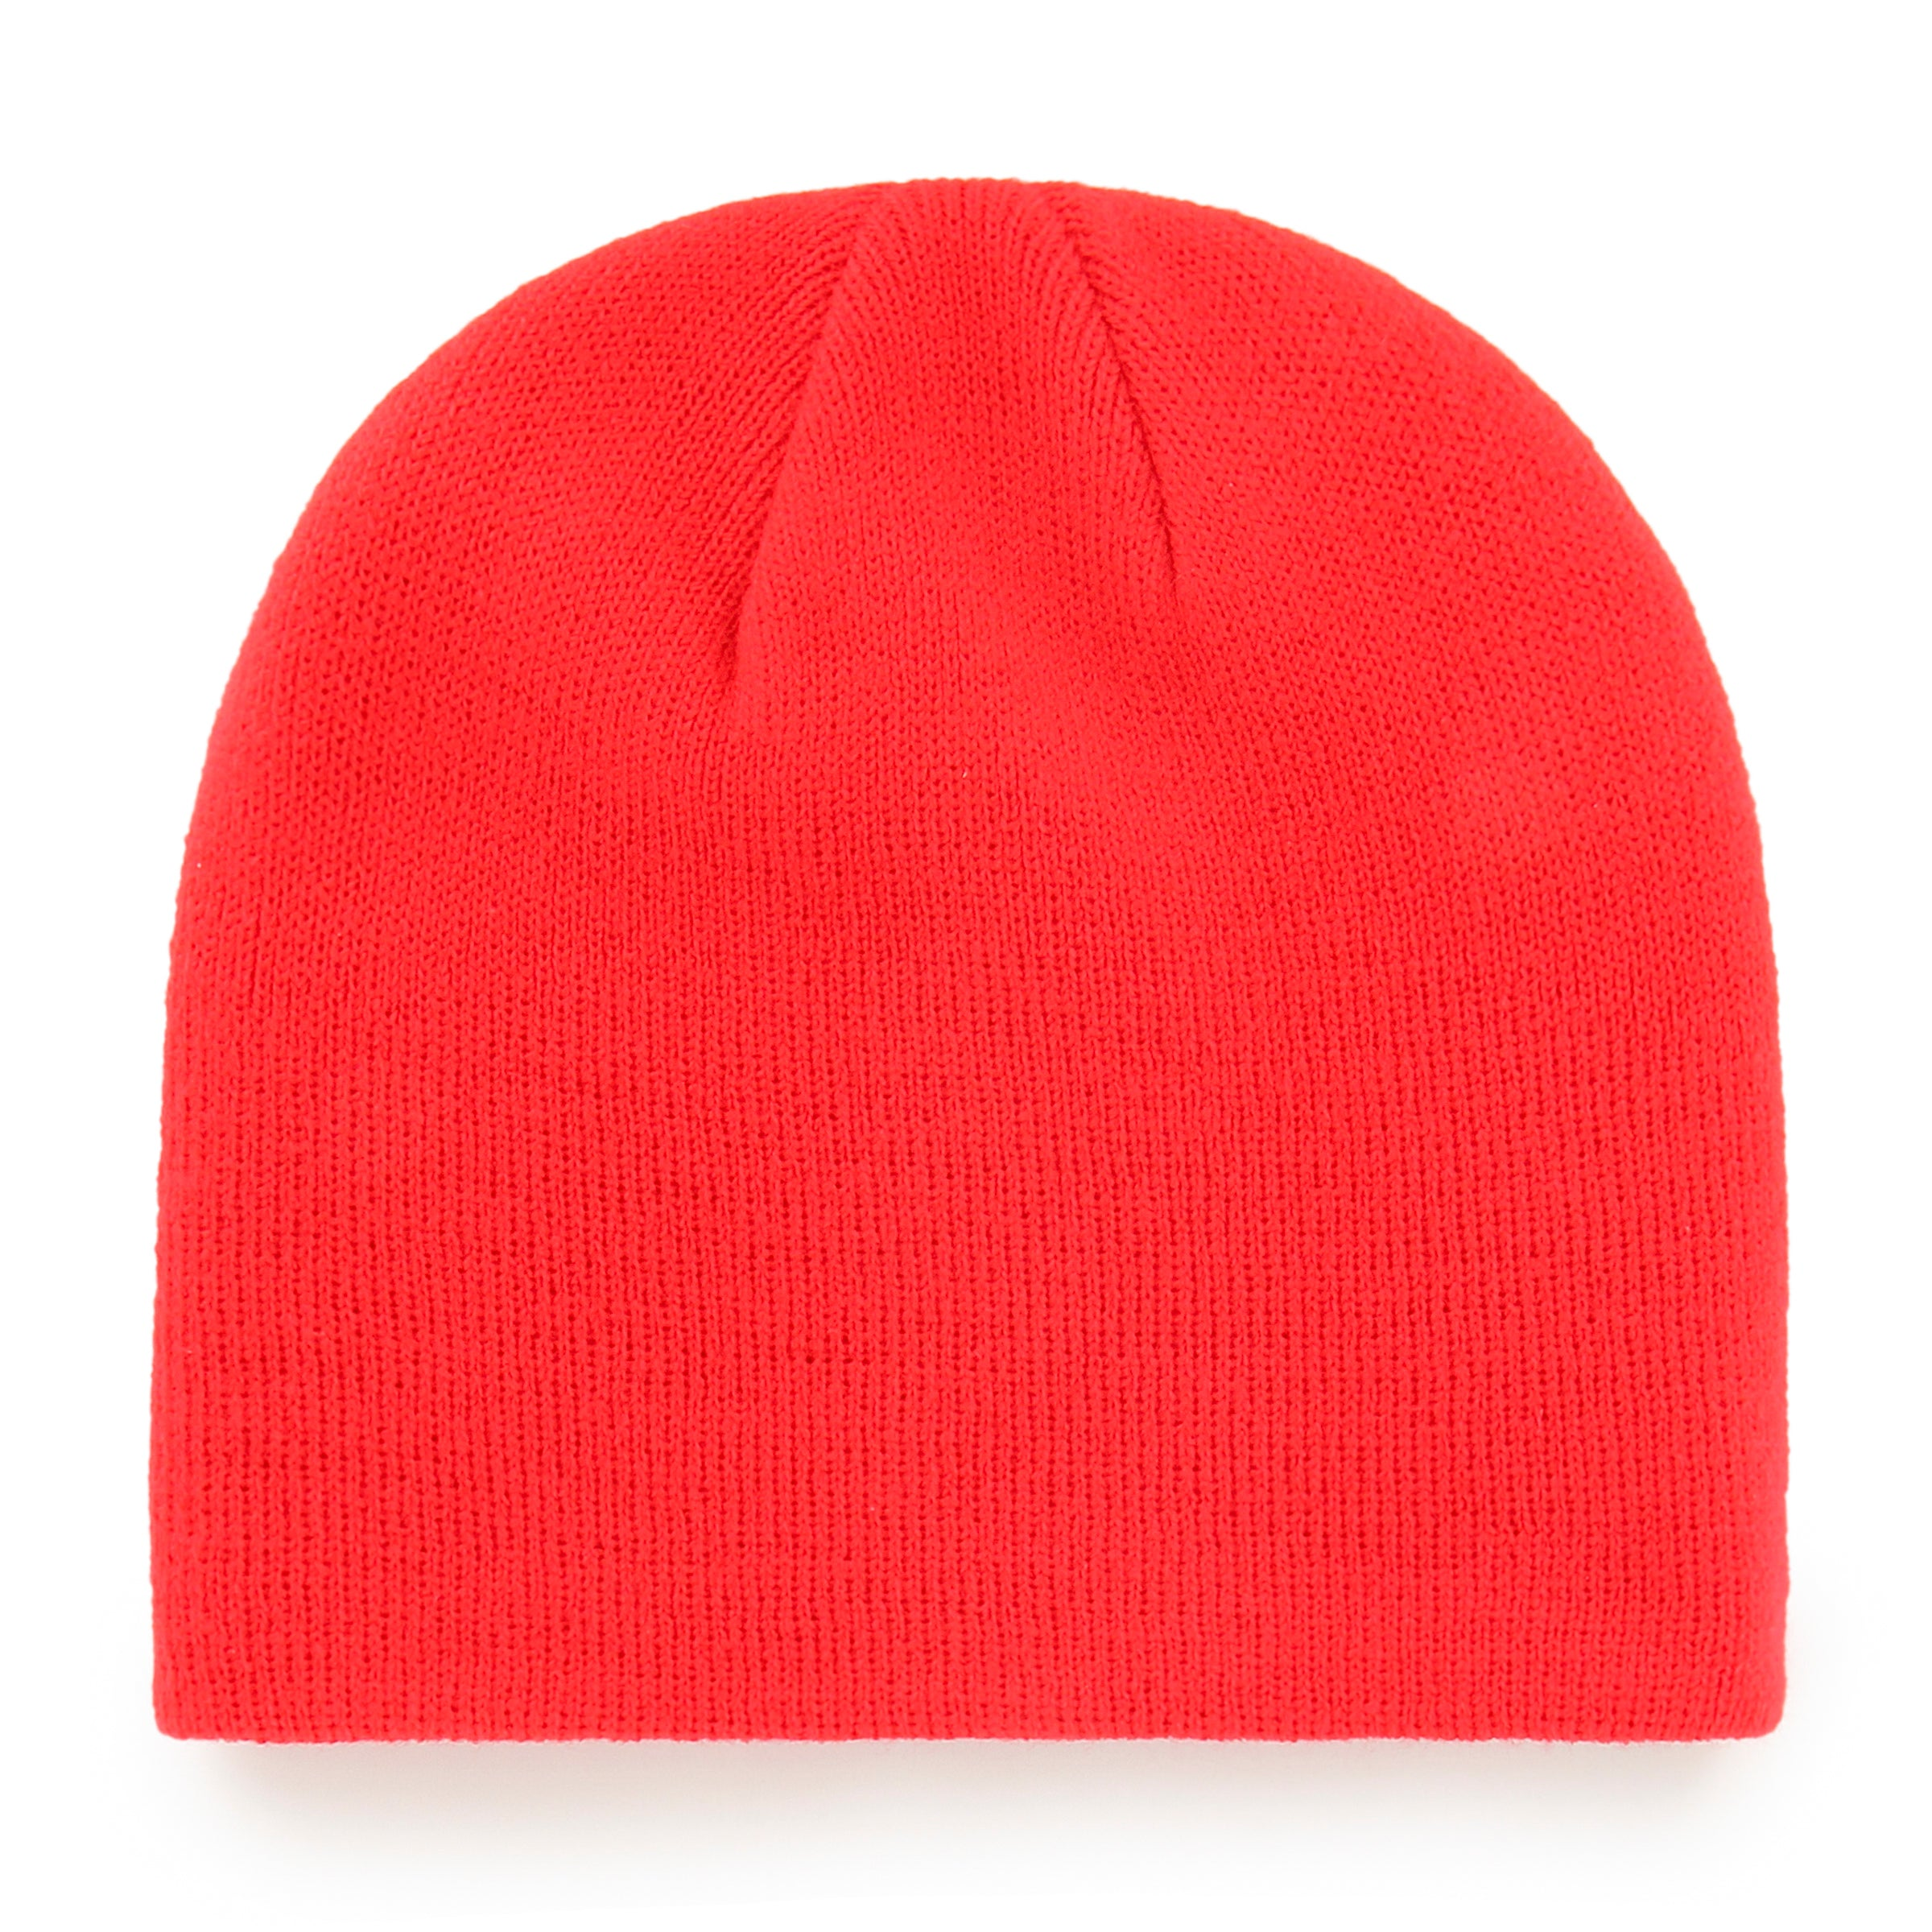 NFFC Red '47 Beanie